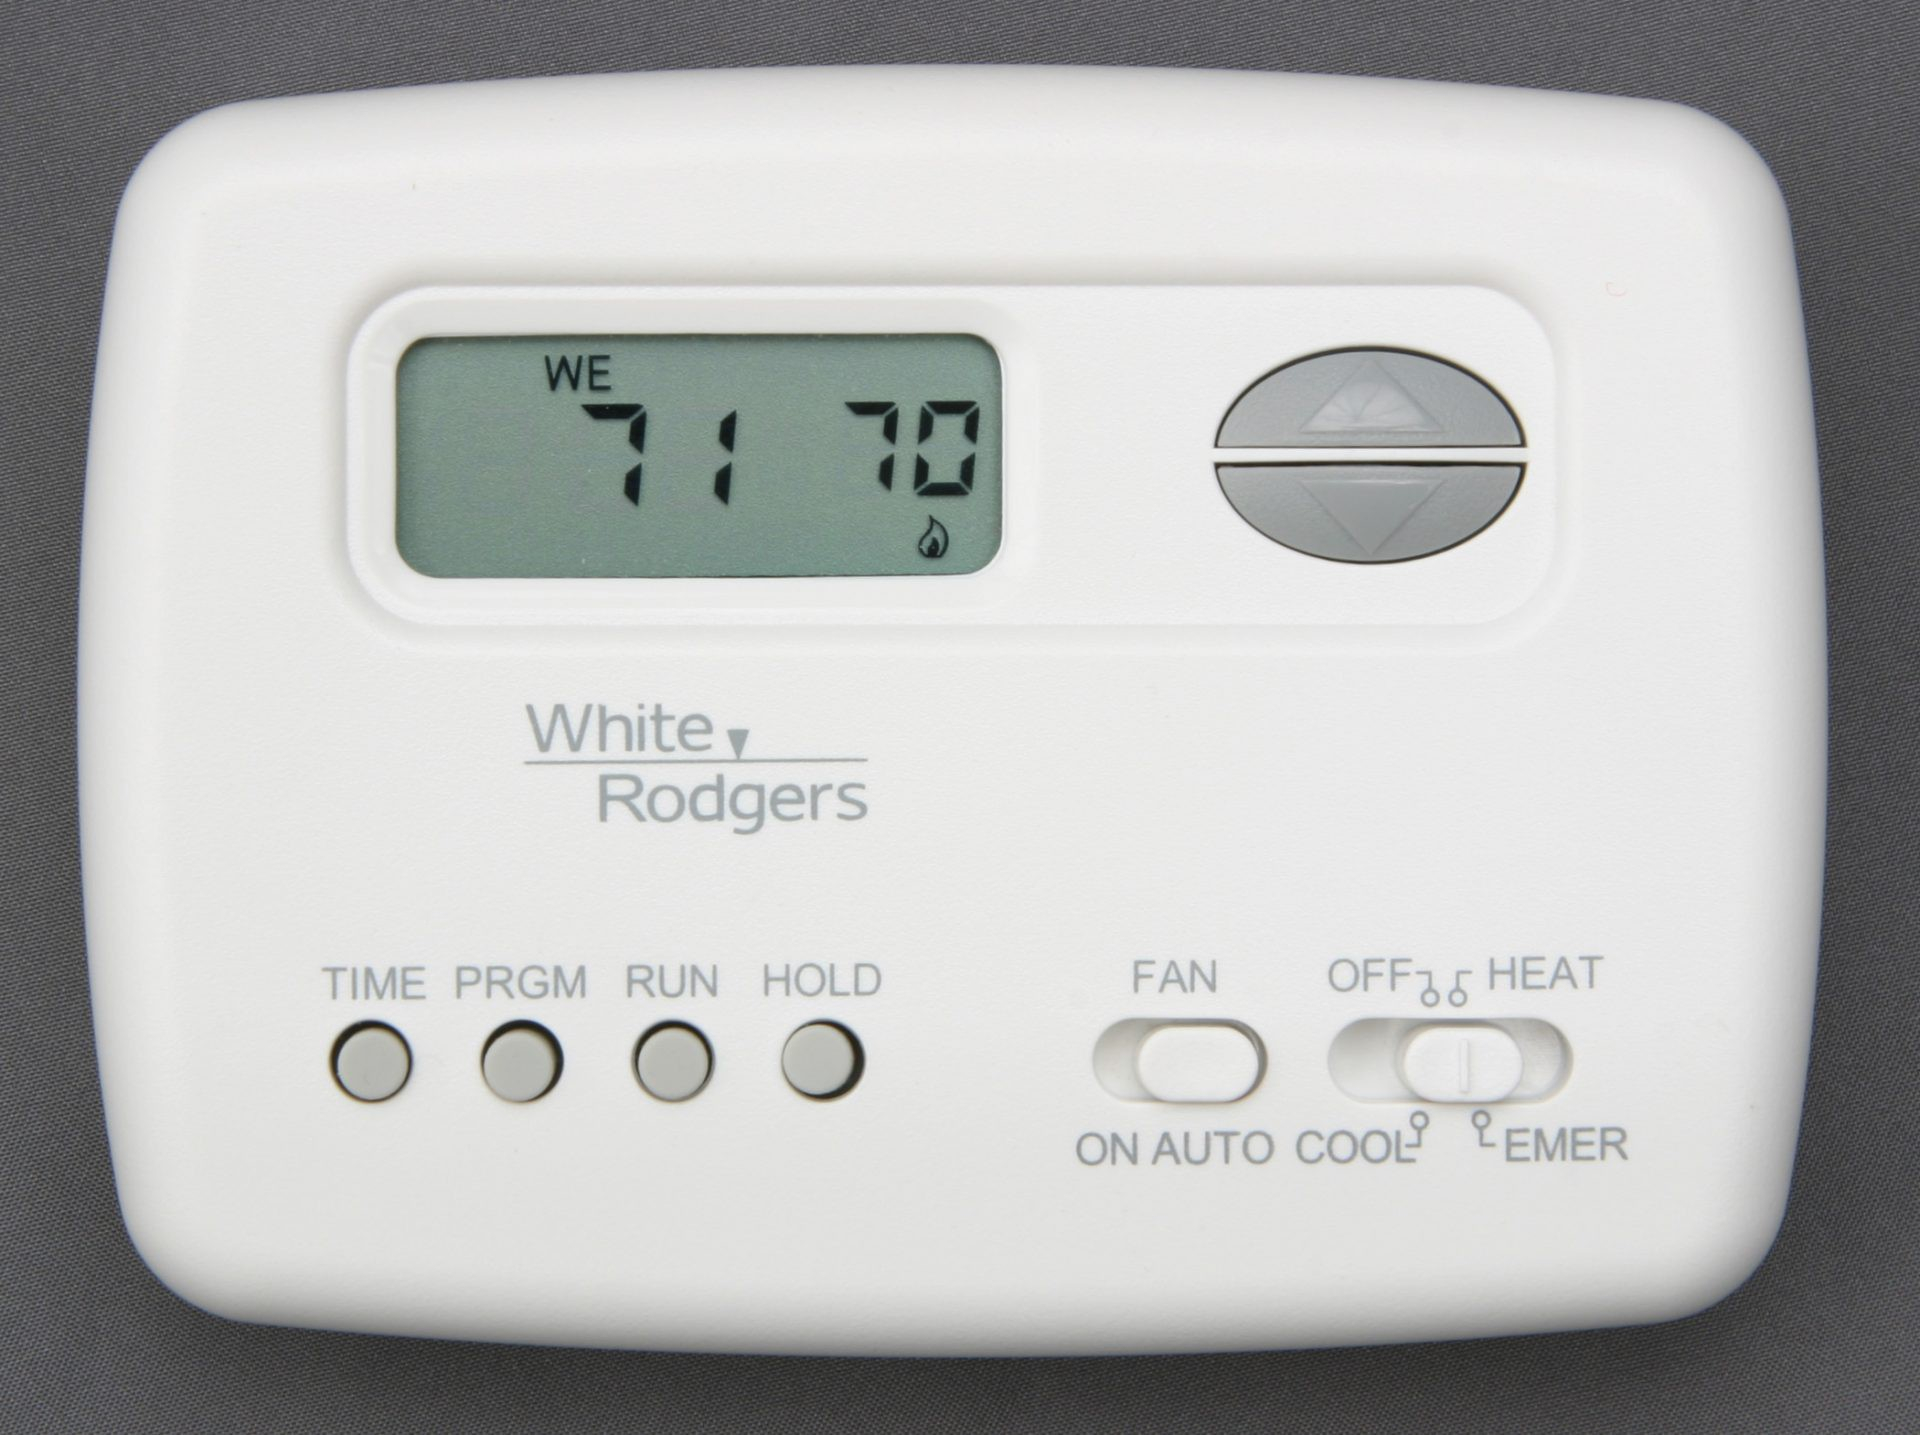 White Rodgers thermostat Wiring Diagram 1f79 Download ... on